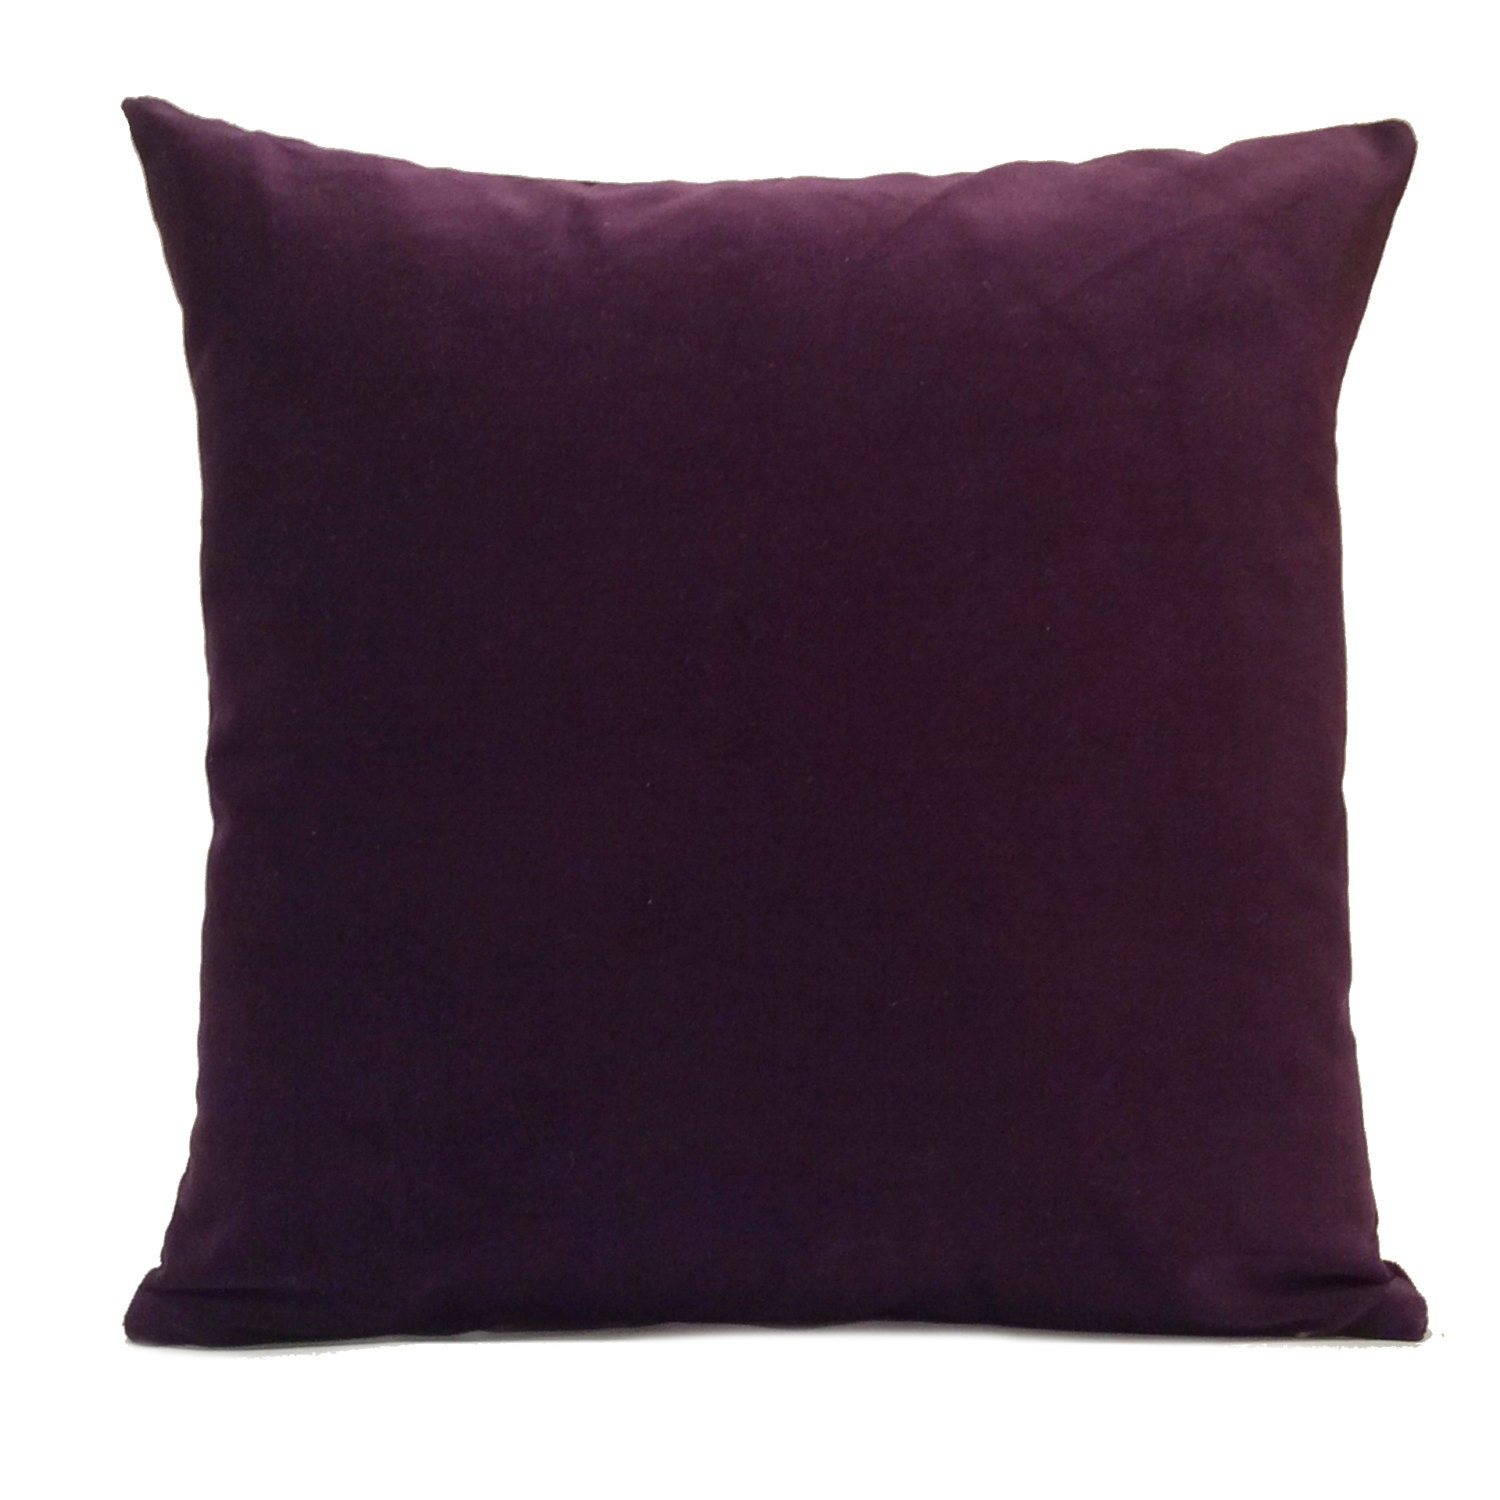 Dark Purple Plum Pillow Throw Pillow Cover Decorative. Split Level Living Room Decorating Ideas. Sofa Color Ideas For Living Room. Flowers For Living Room. Living Room Carpet Decorating Ideas. Small Scale Furniture Living Room. Wainscoting In Living Room. Decorate Living Room Walls. Industrial Rustic Living Room